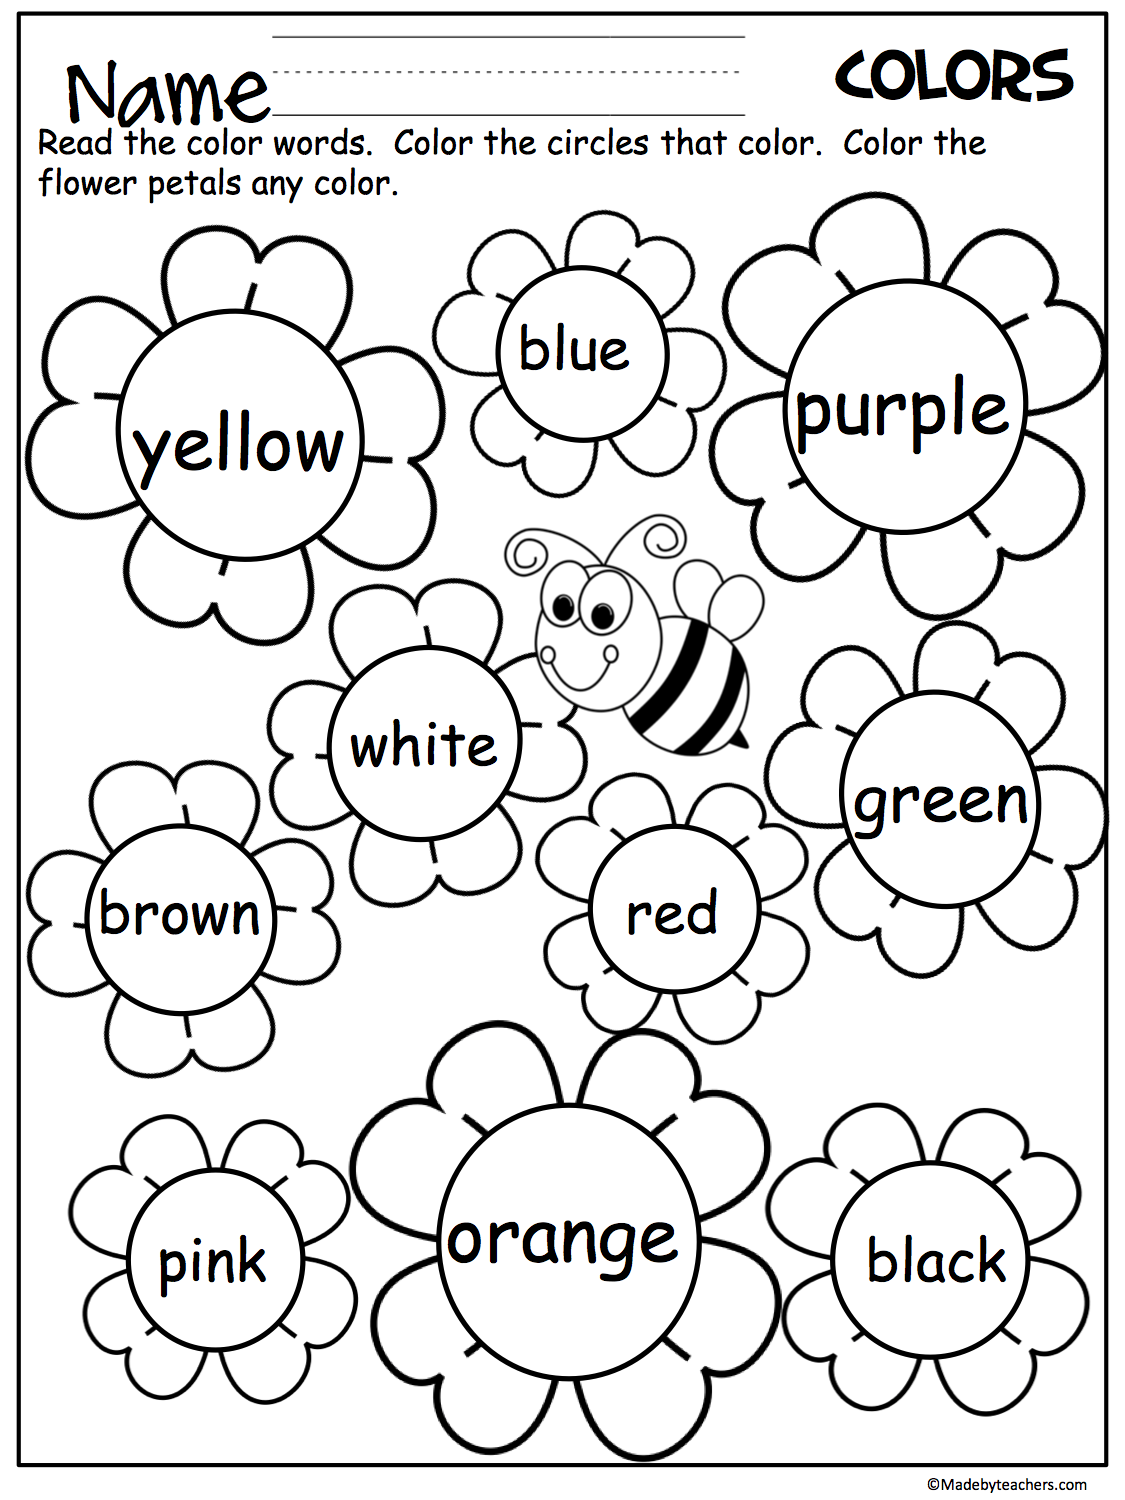 Flower Color Words Worksheet - Madebyteachers